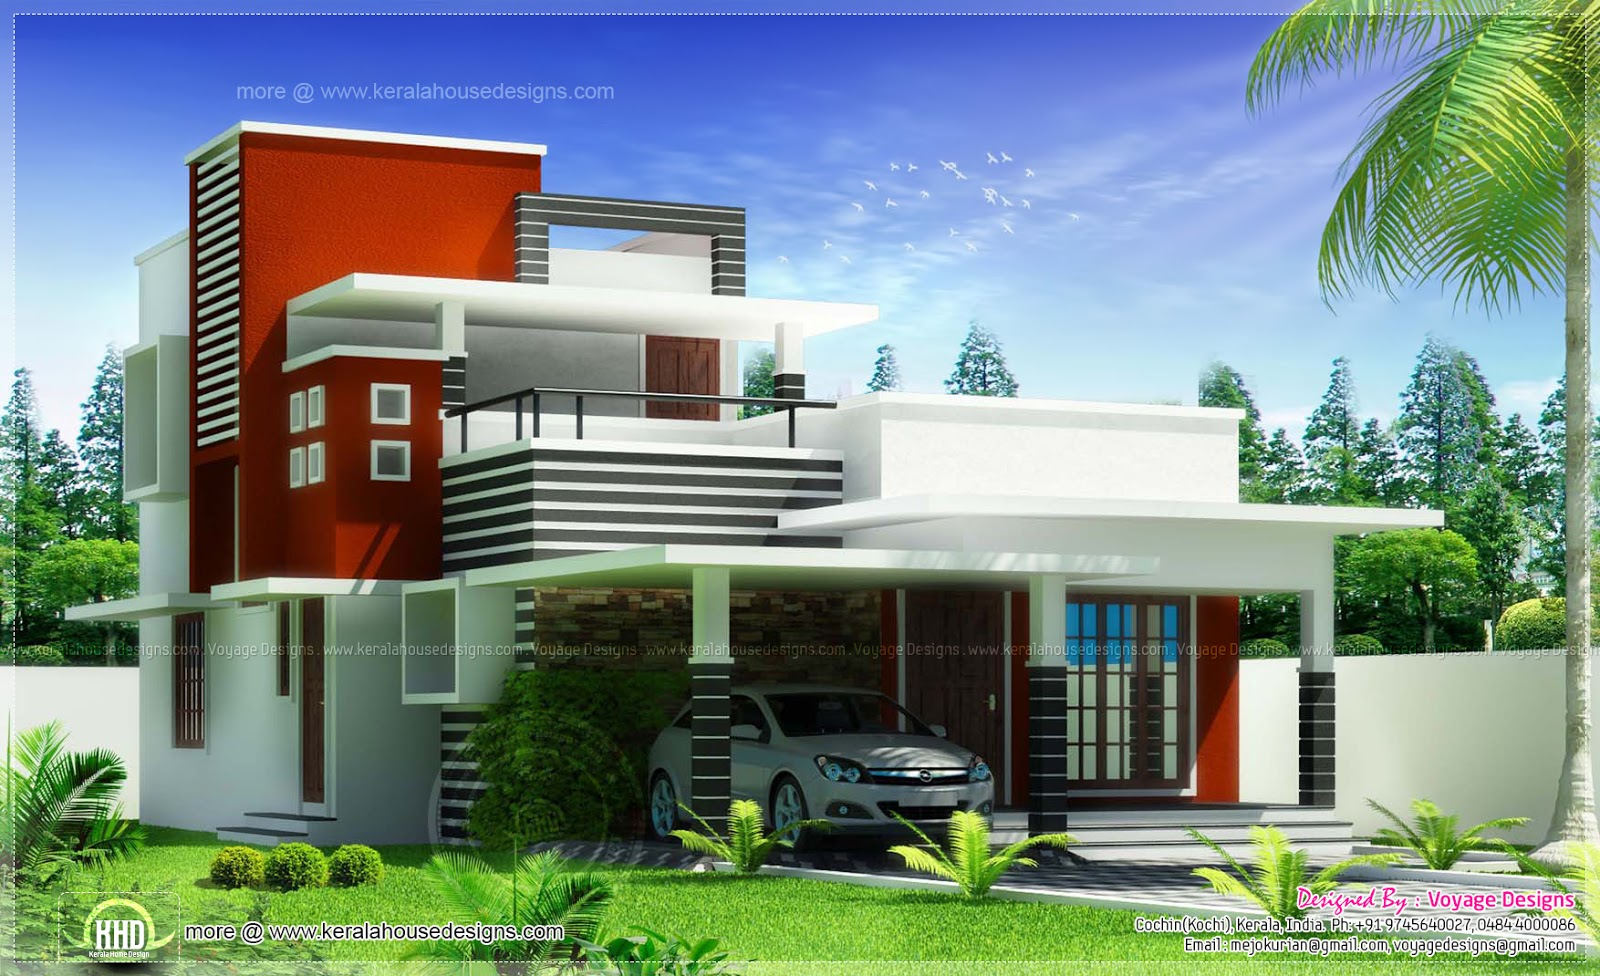 3 bed room contemporary style house kerala home design for Modern style house plans